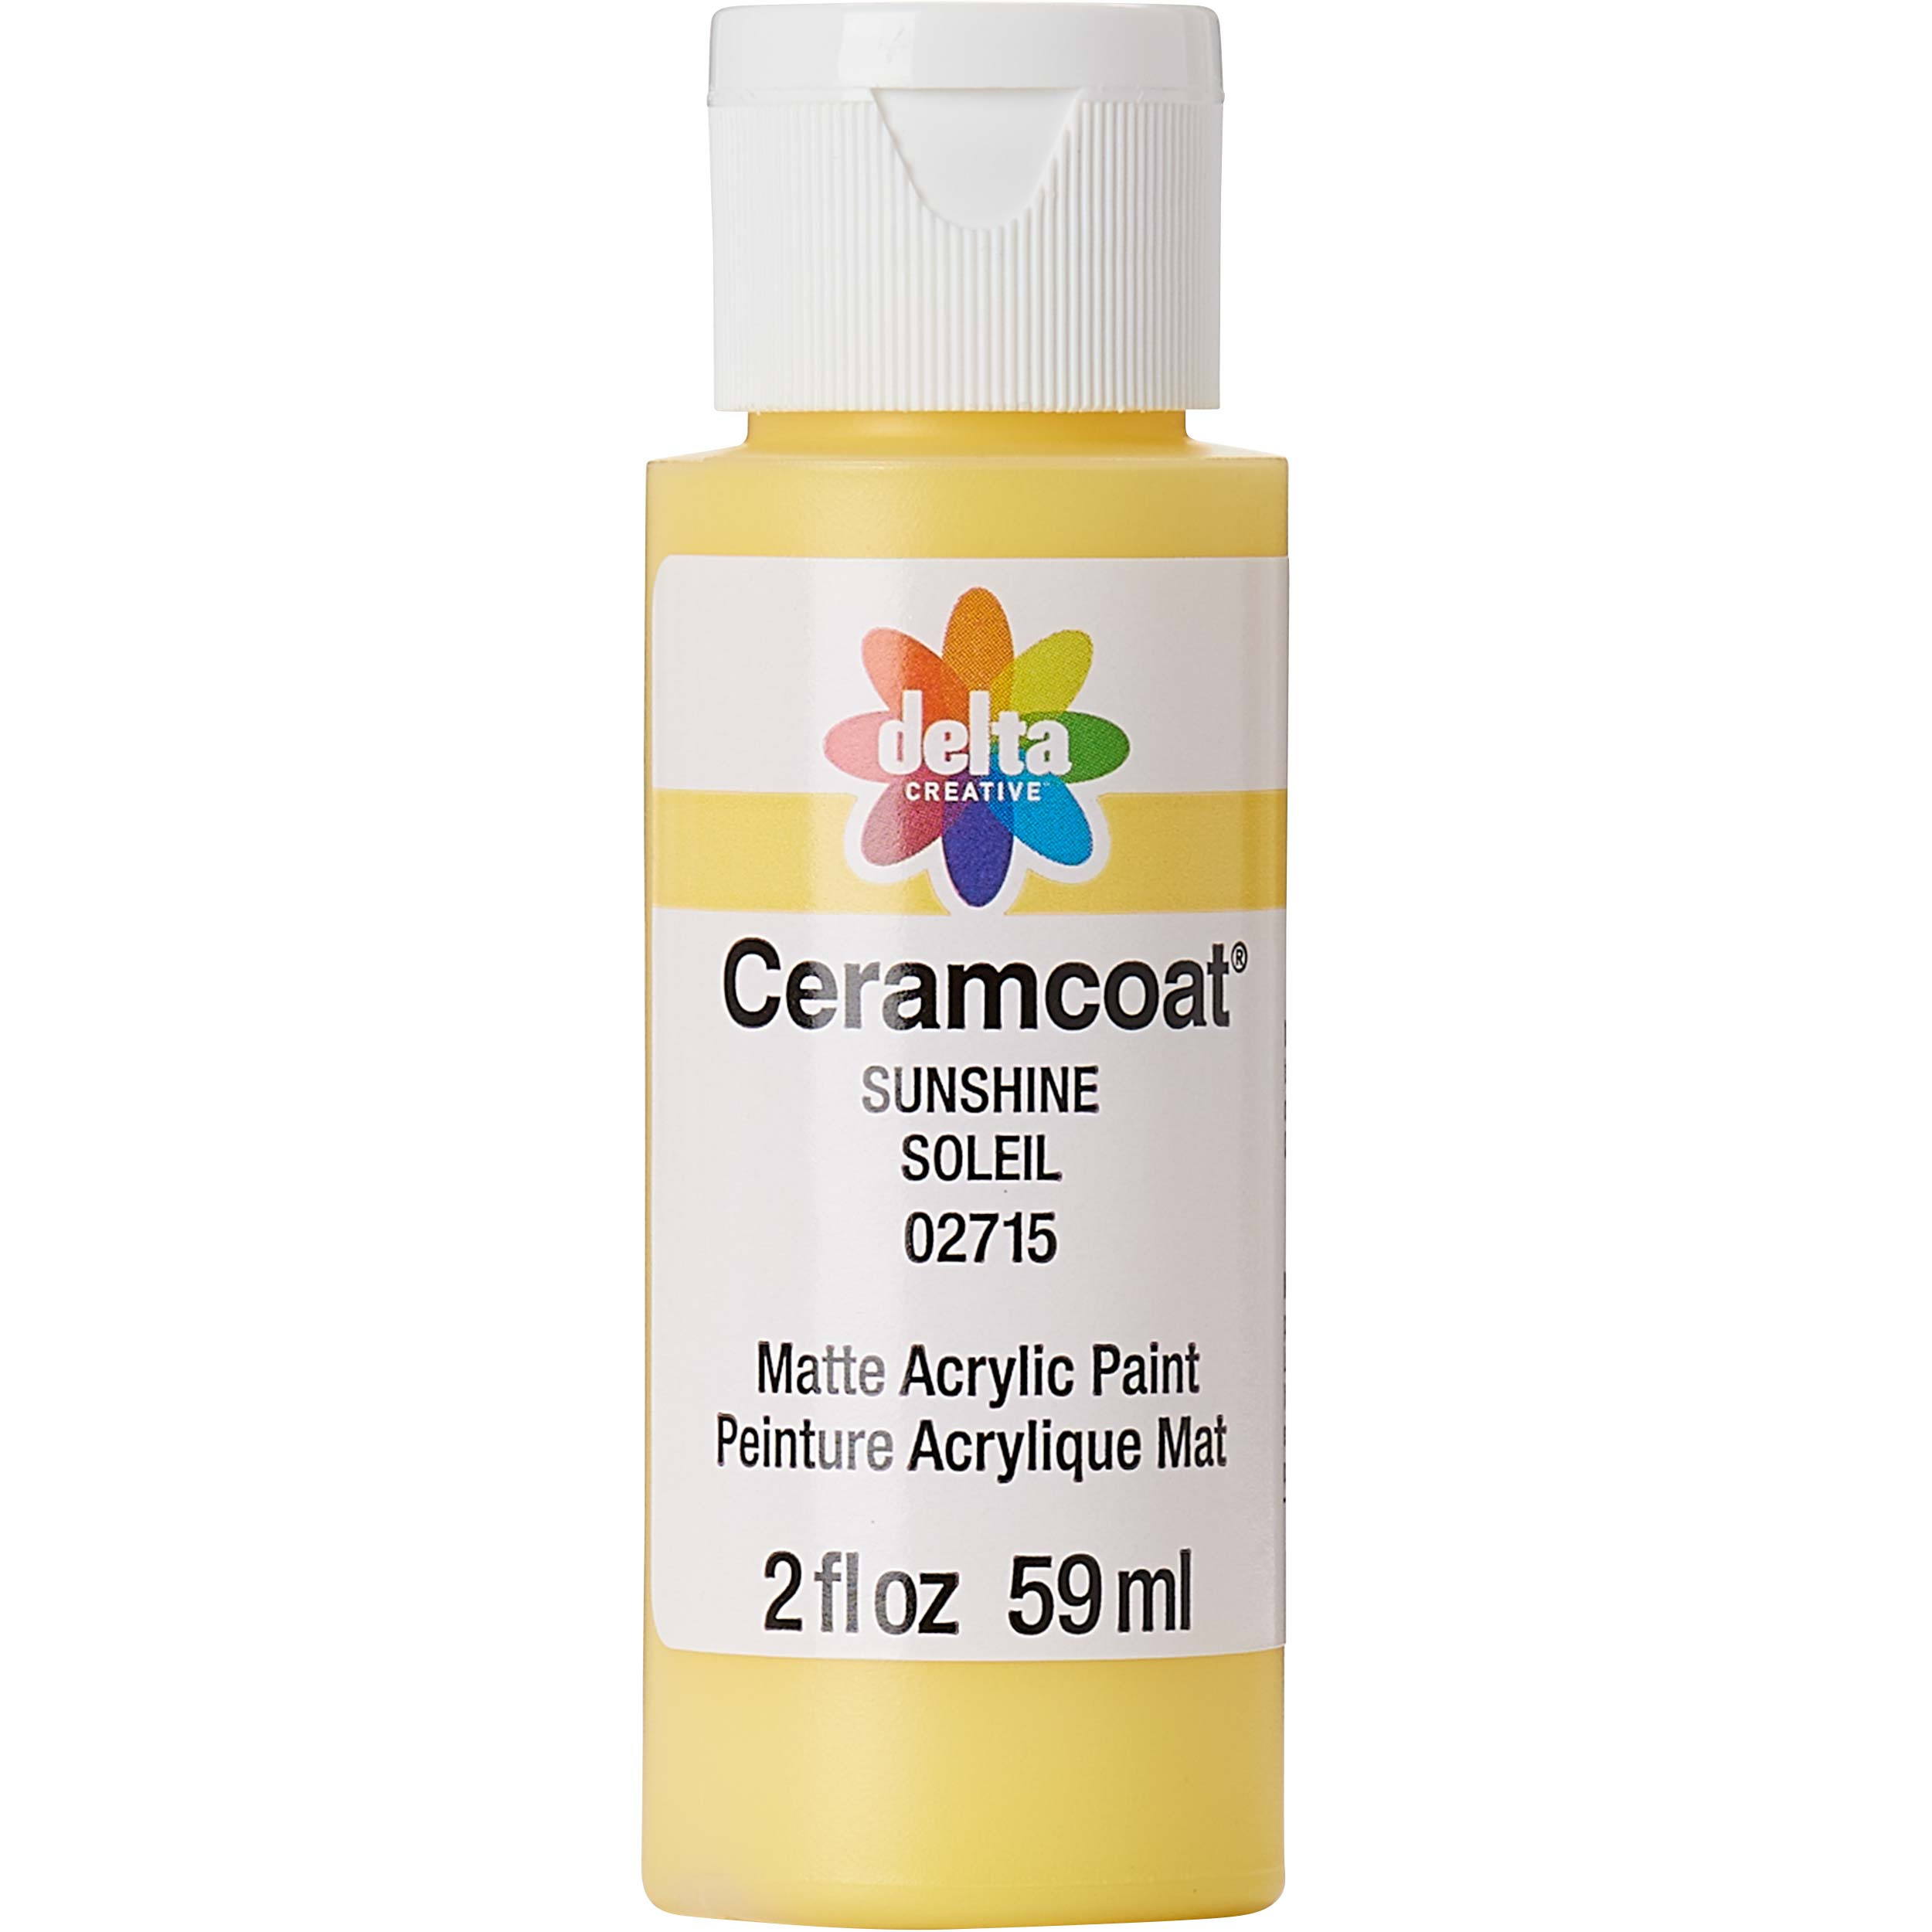 Delta Ceramcoat ® Acrylic Paint - Sunshine, 2 oz. - 02715